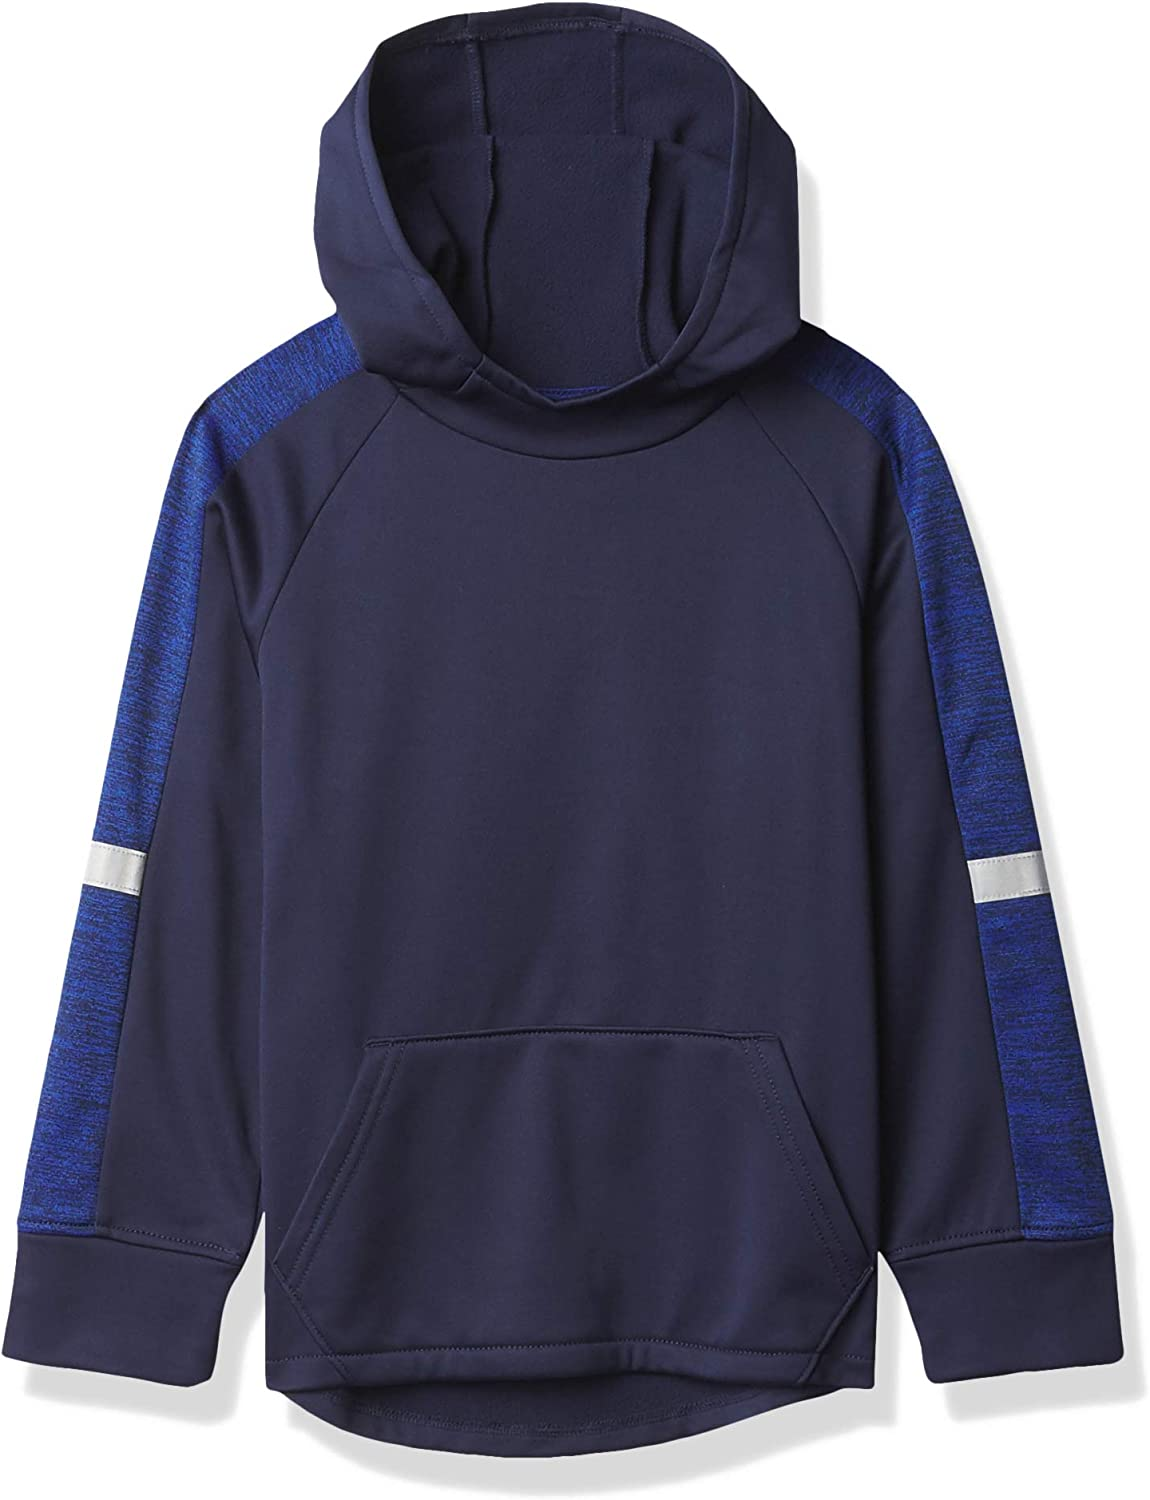 The Children's Place Boys' Active Reflective Colorblock Performance Hoodie